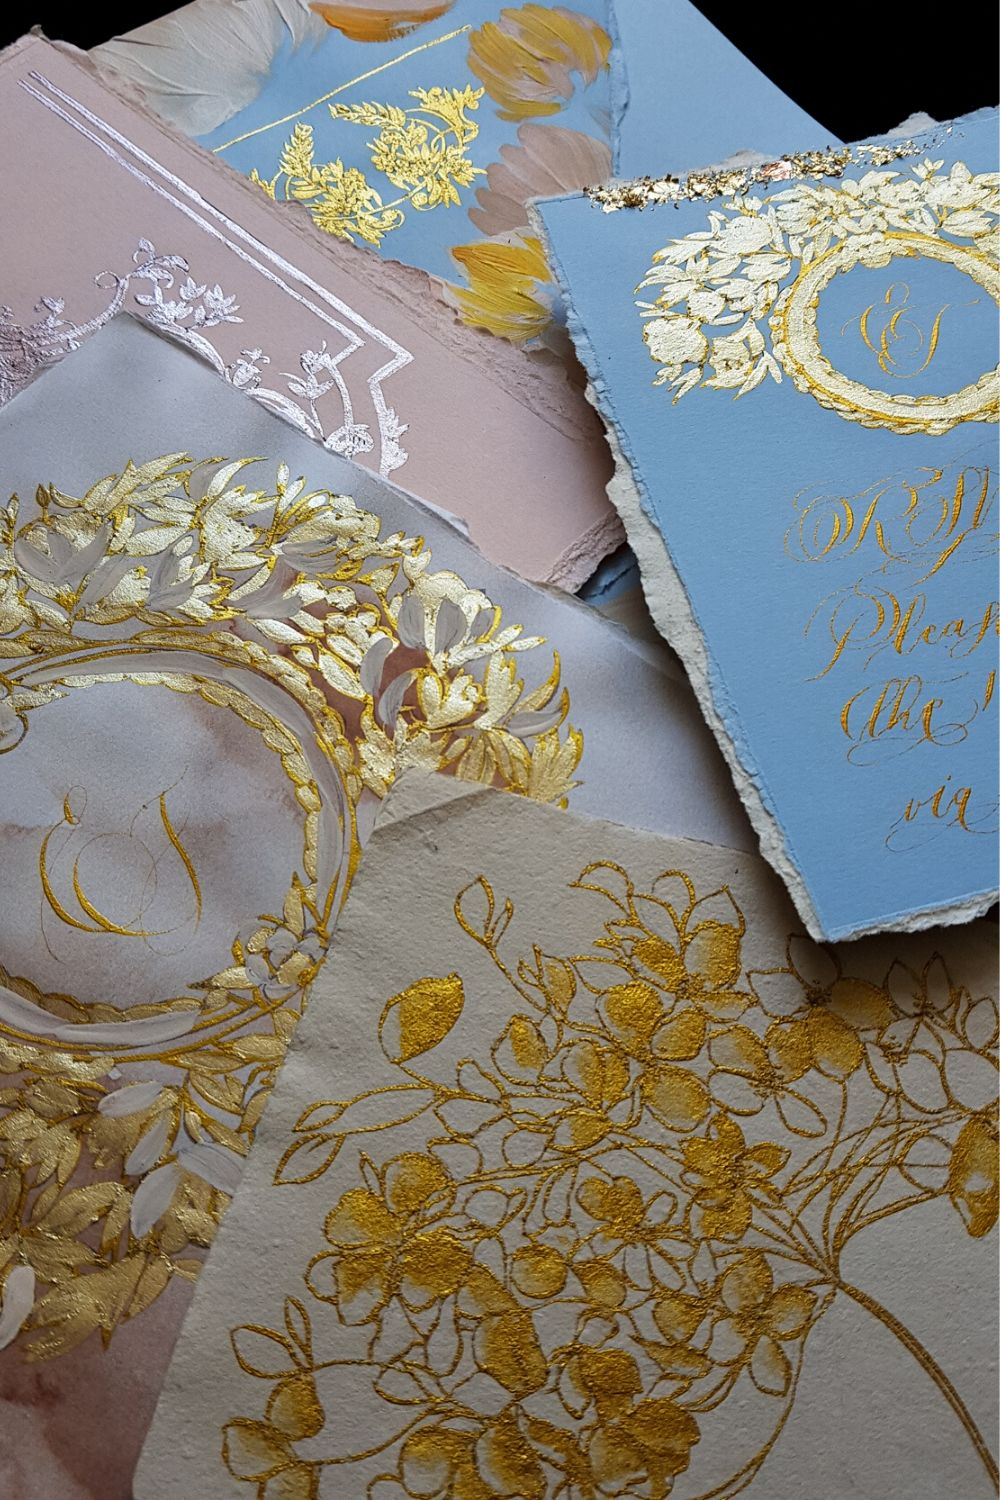 Elegant and romantic fine art luxury wedding stationery for high end destination weddings at Villa Cipressi